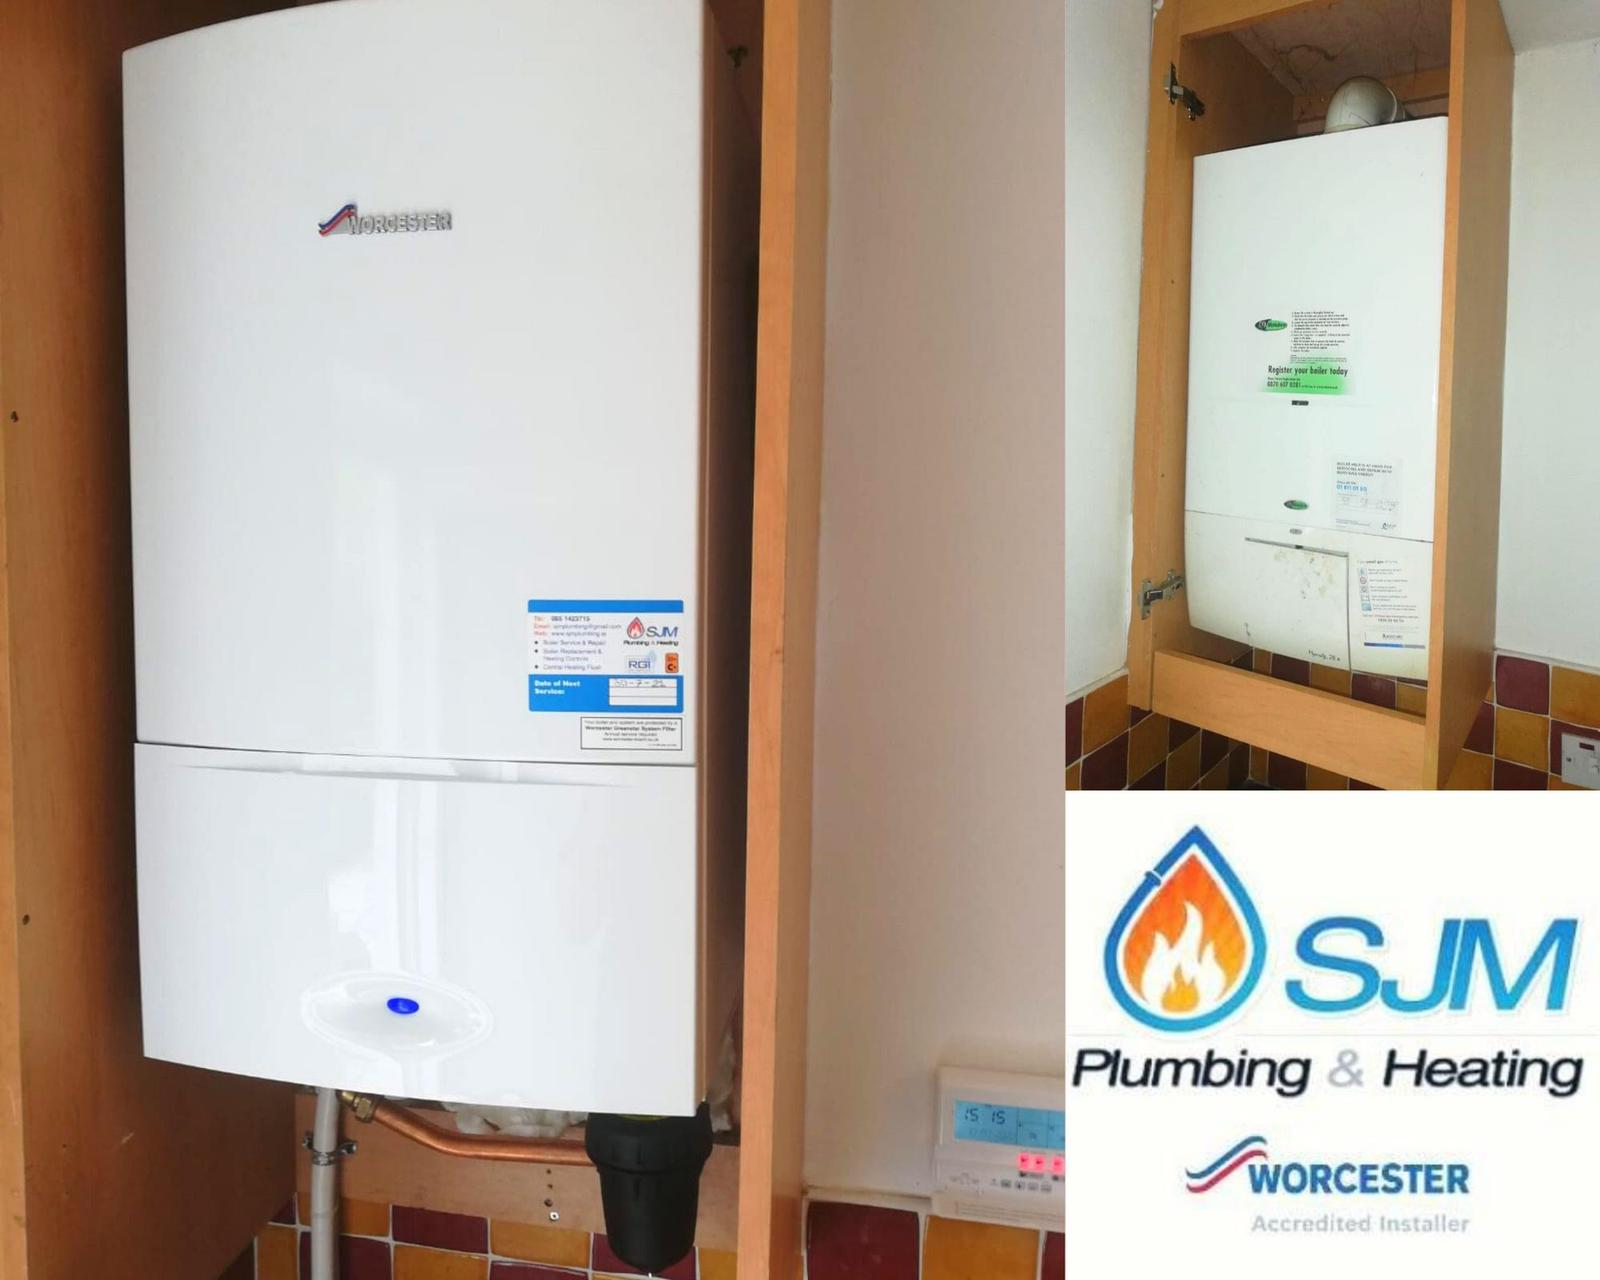 SJM Plumbing & Heating – Boiler Replacement throughout Meath